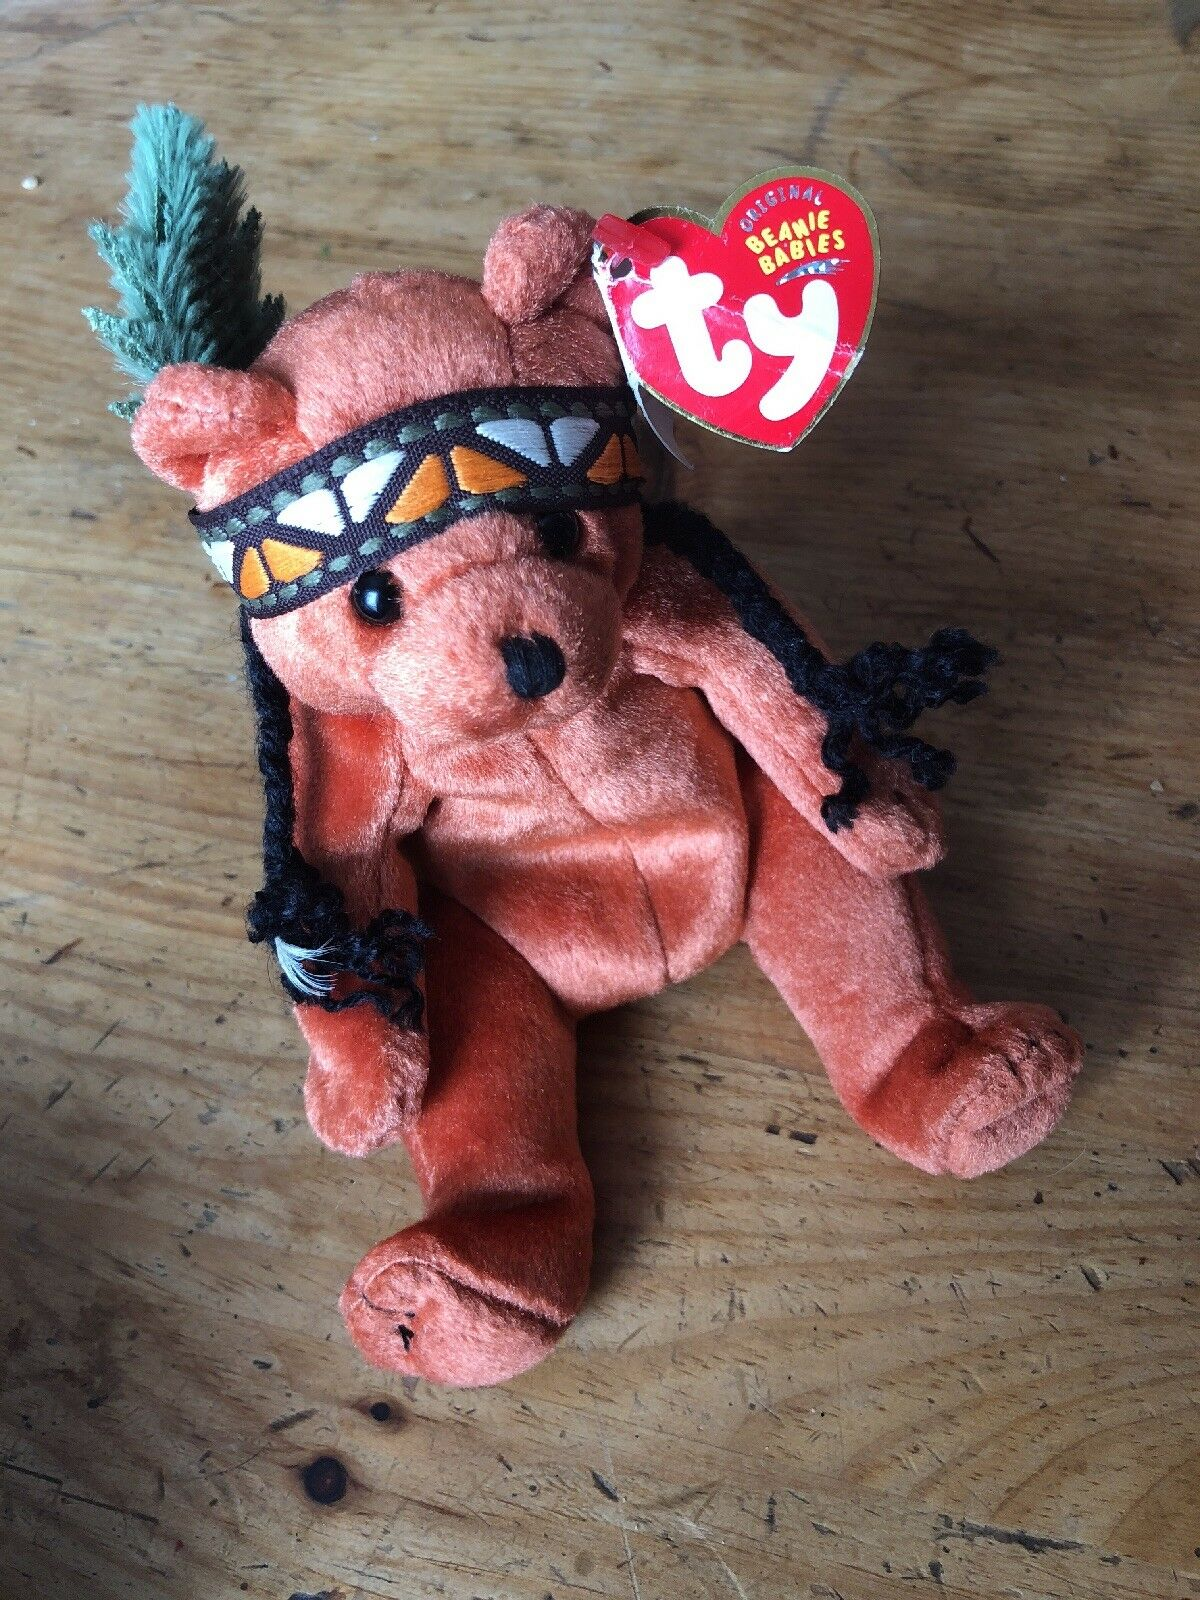 838c4f91a99 TY Beanie Baby - Little Feather The Bear for sale online